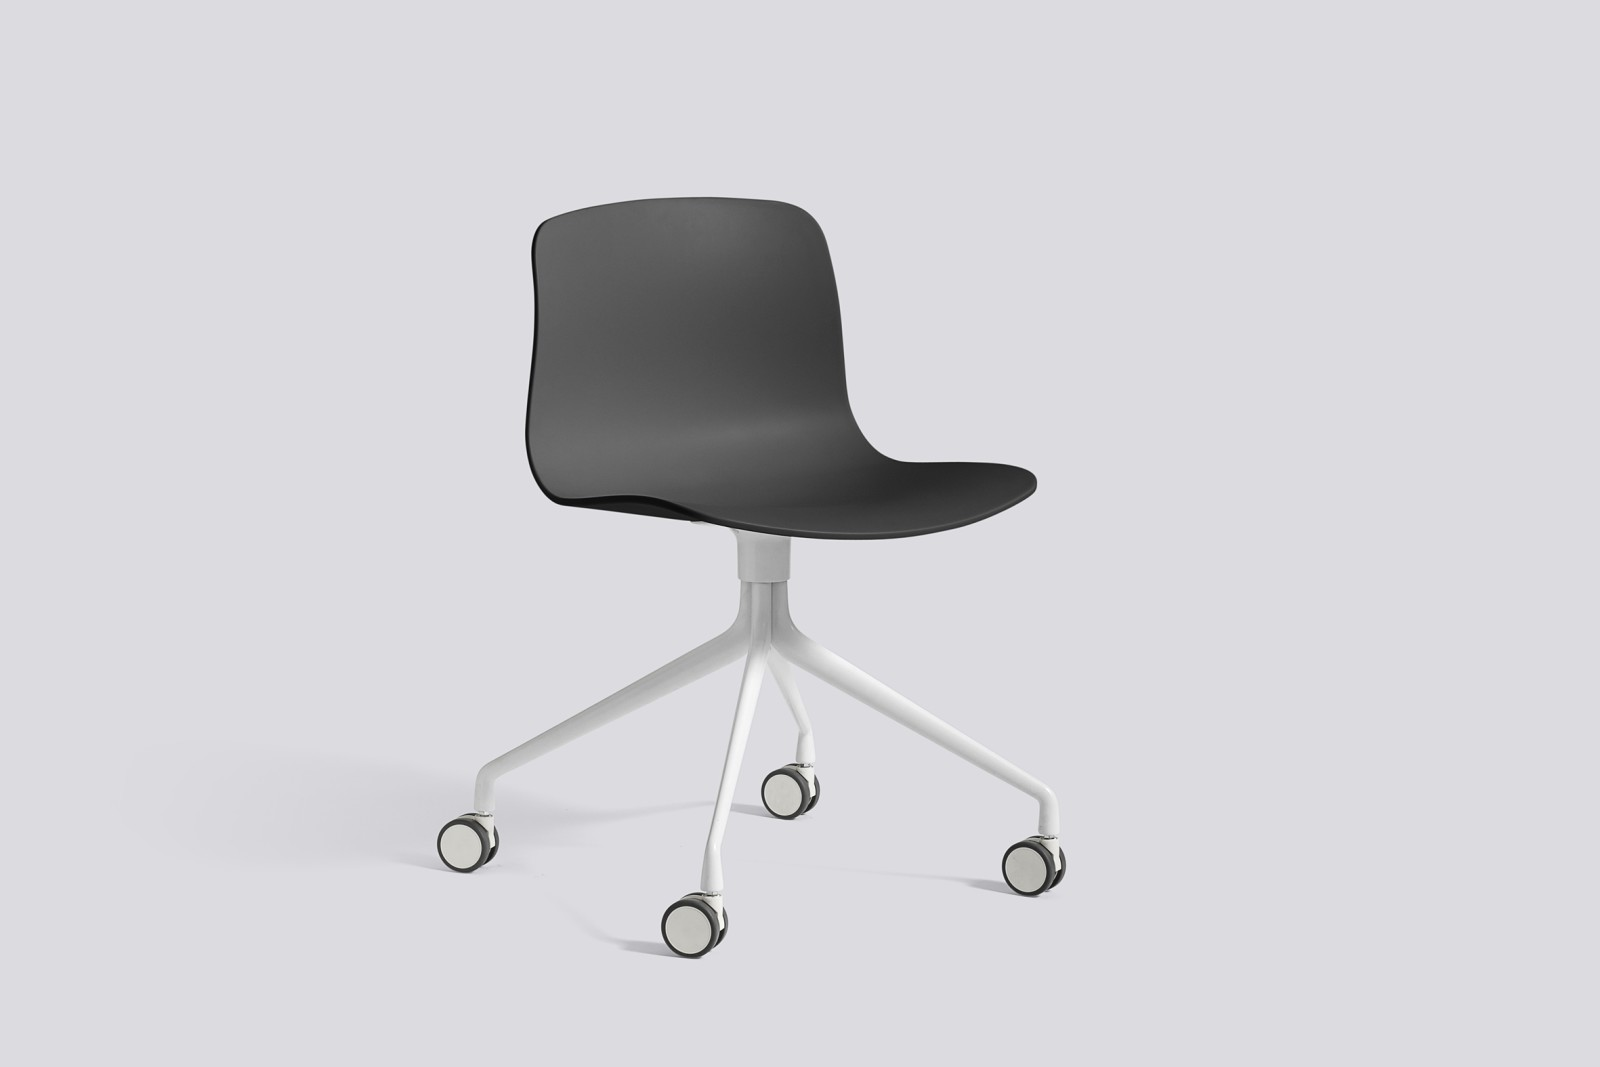 About A Chair AAC14 Soft black, White Powder Coated Aluminium